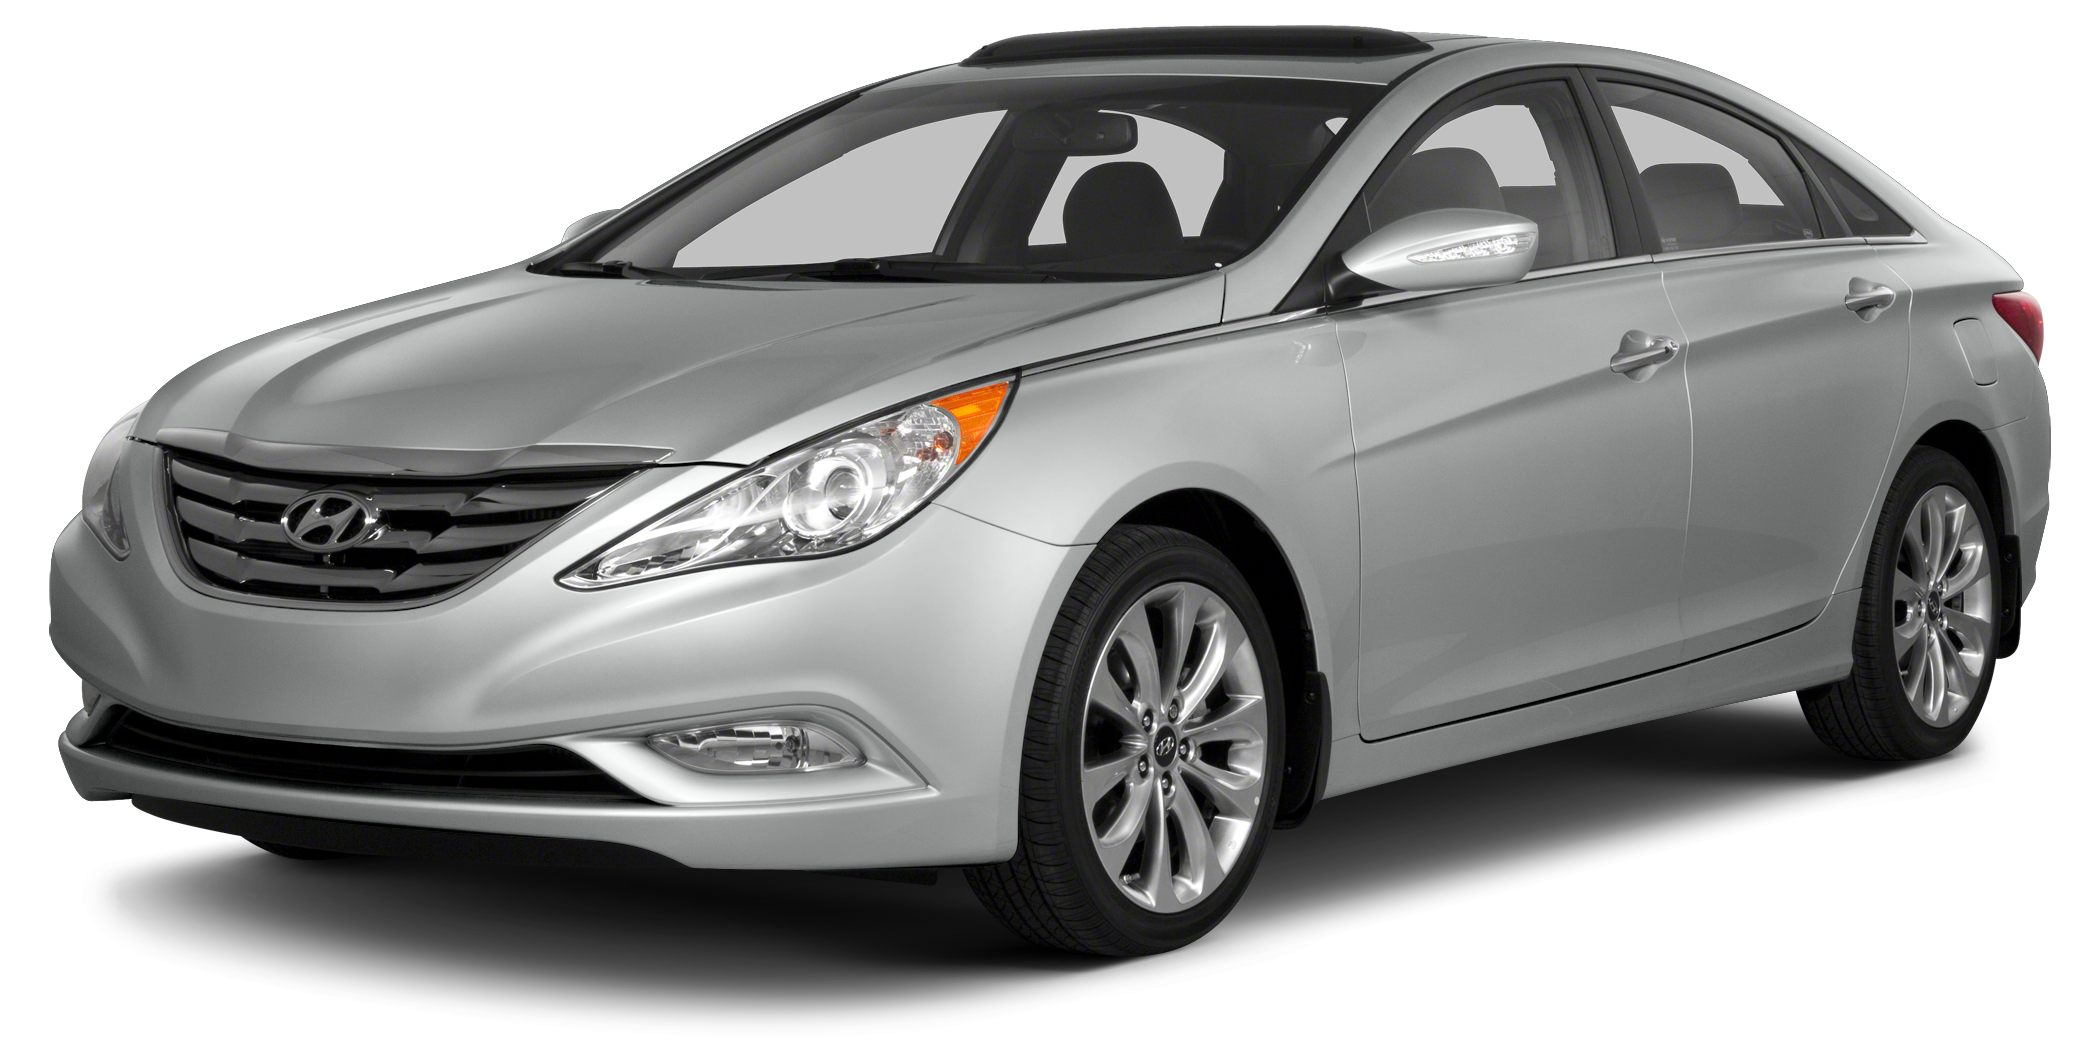 2013 Hyundai Sonata GLS Looking for a used car at an affordable price Familiarize yourself with t